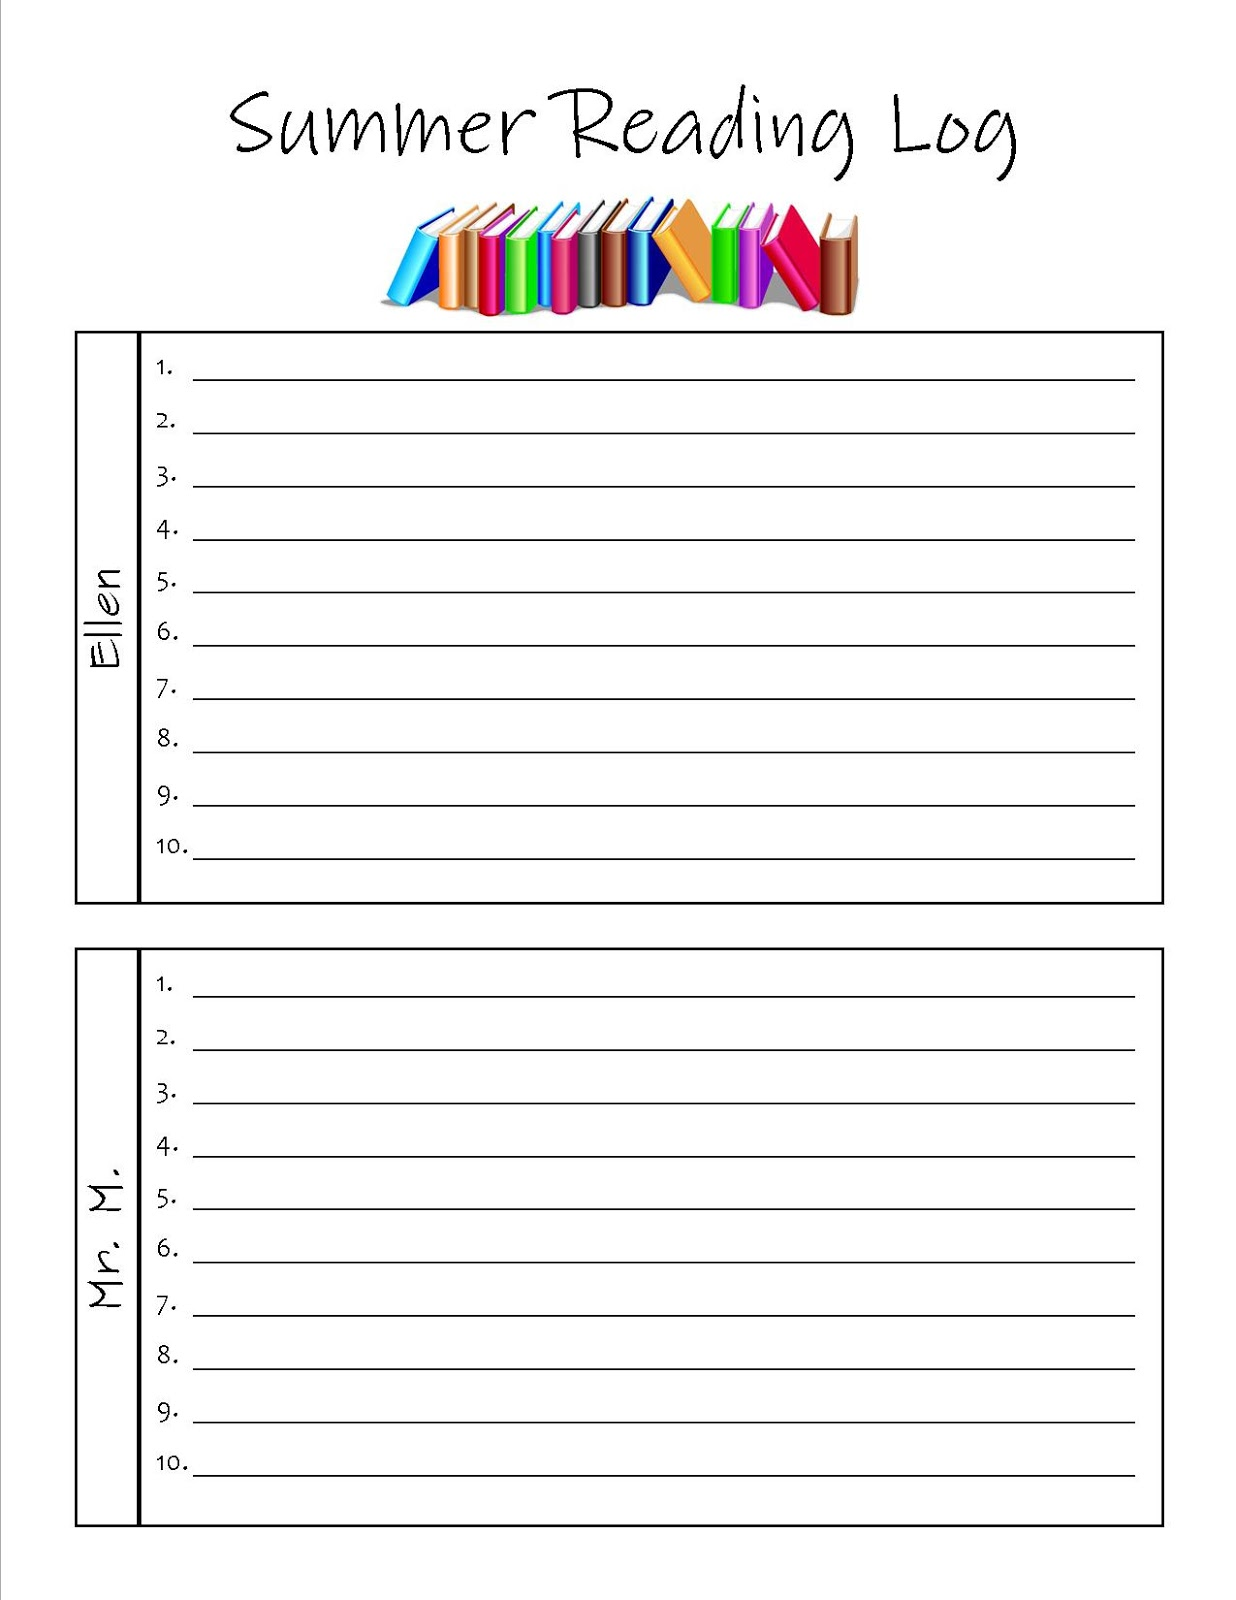 Reading log samples middle school reading log book for Summer reading log template